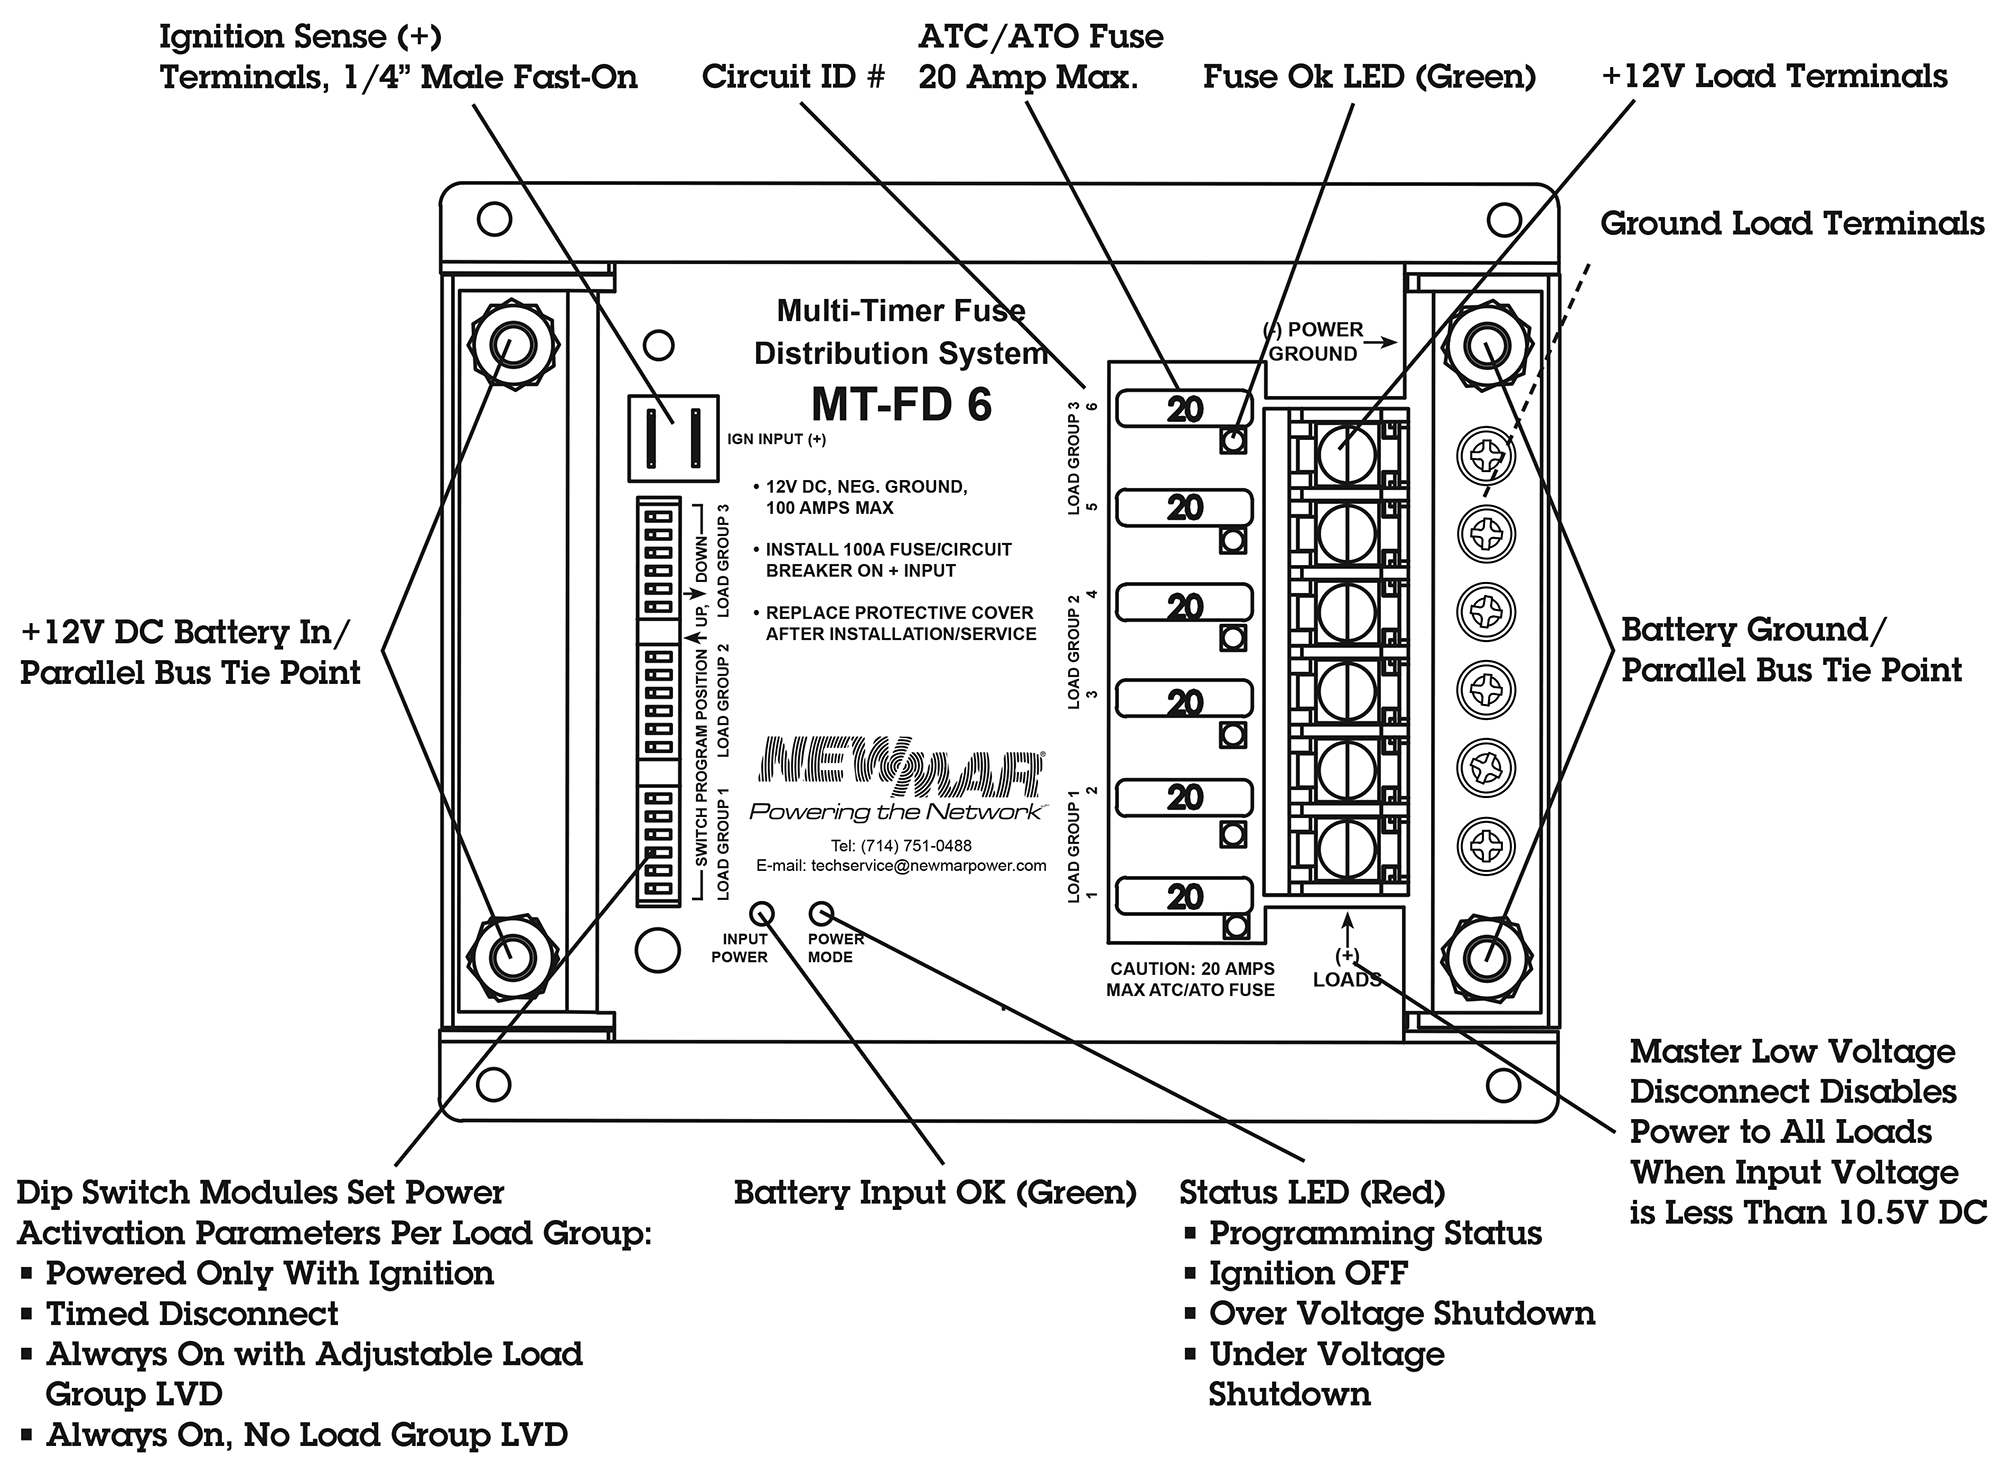 Newmar Powering the Mobile Network with the Multi Timer and Fuse Distribution System, model MT-FD 6, feature diagram